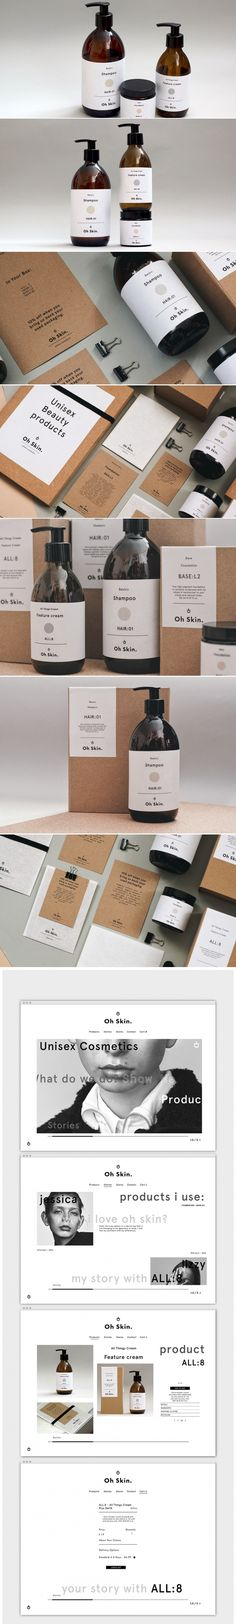 Oh Skin Unisex Cosmetics — The Dieline - Branding & Packaging Design